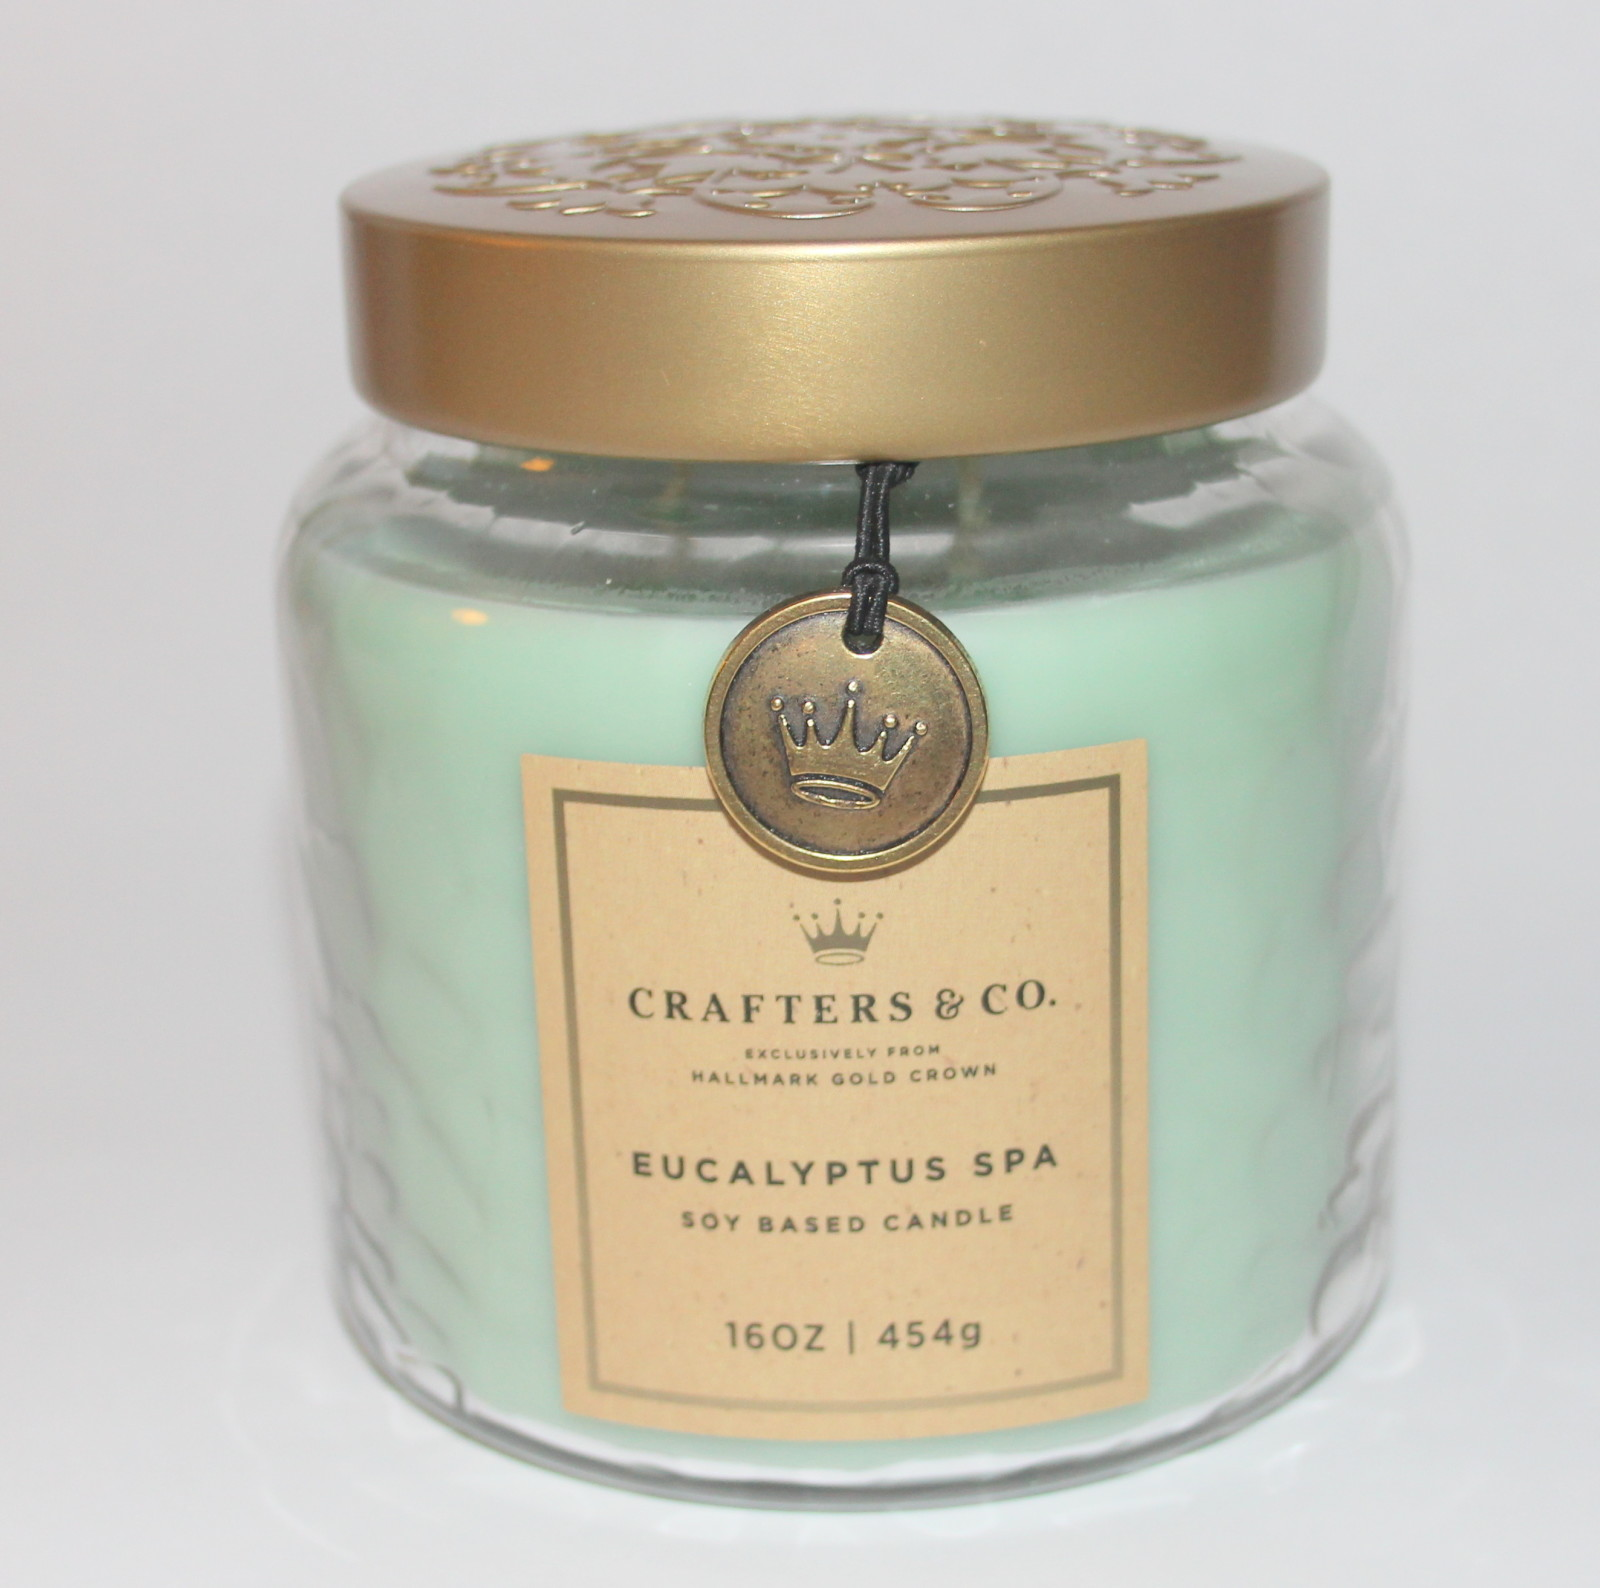 Crafters & Co Candle Review